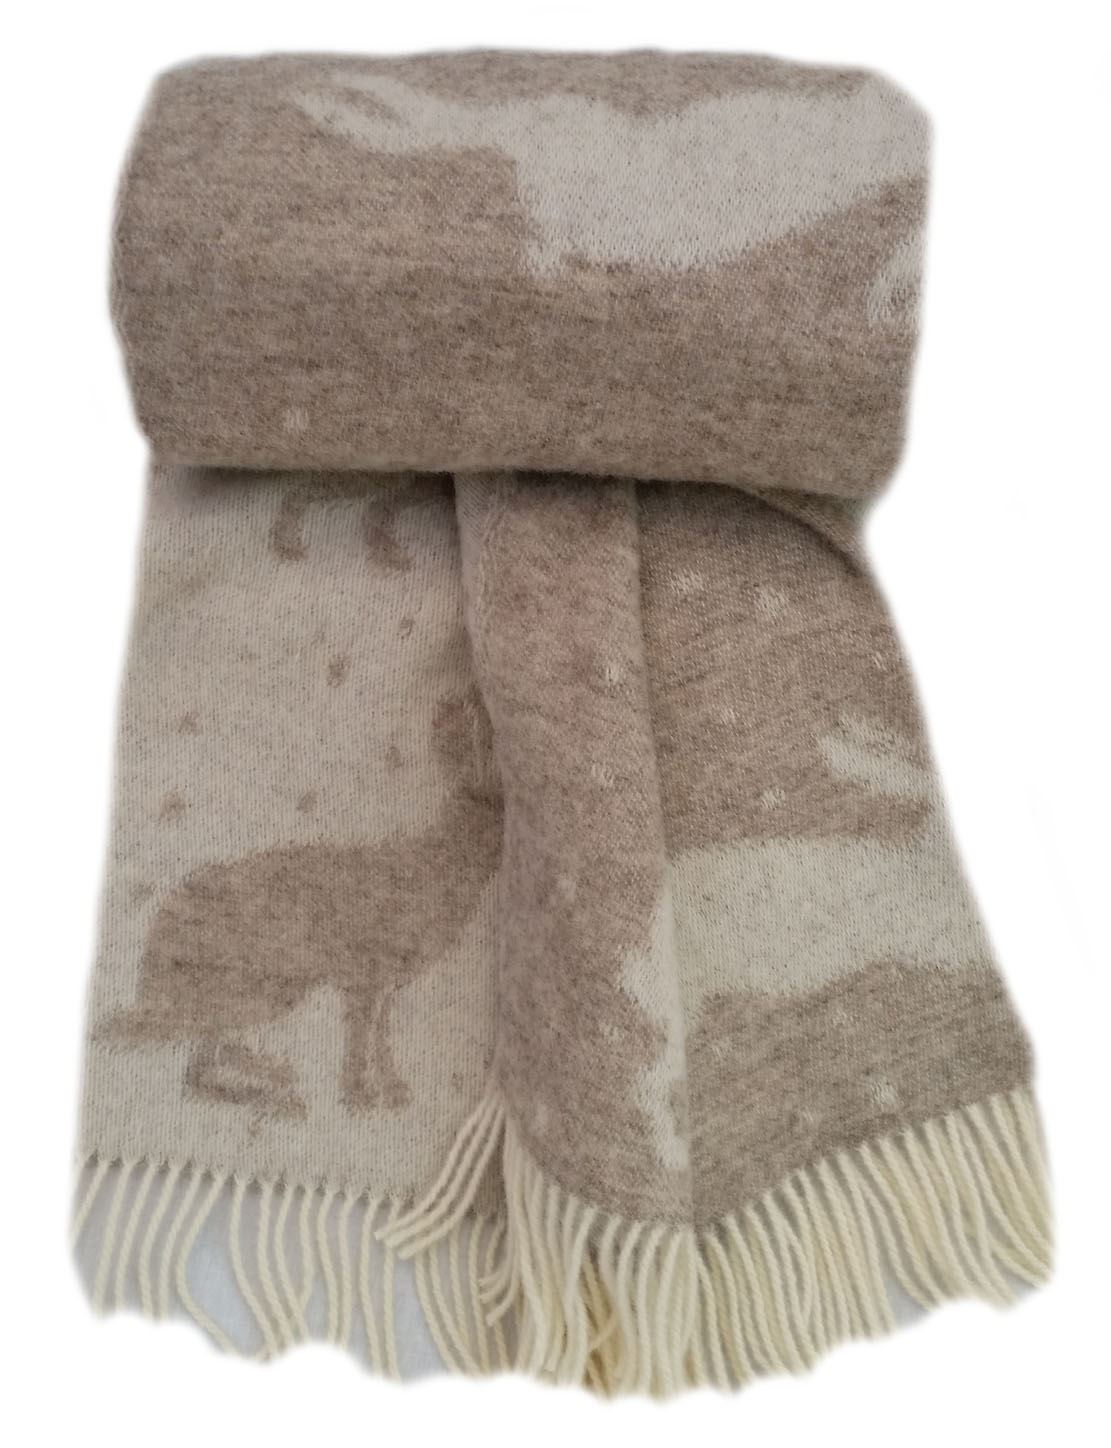 Wool Throw Sheep High Quality Horse Spring Stag Woodland Patterns Hare